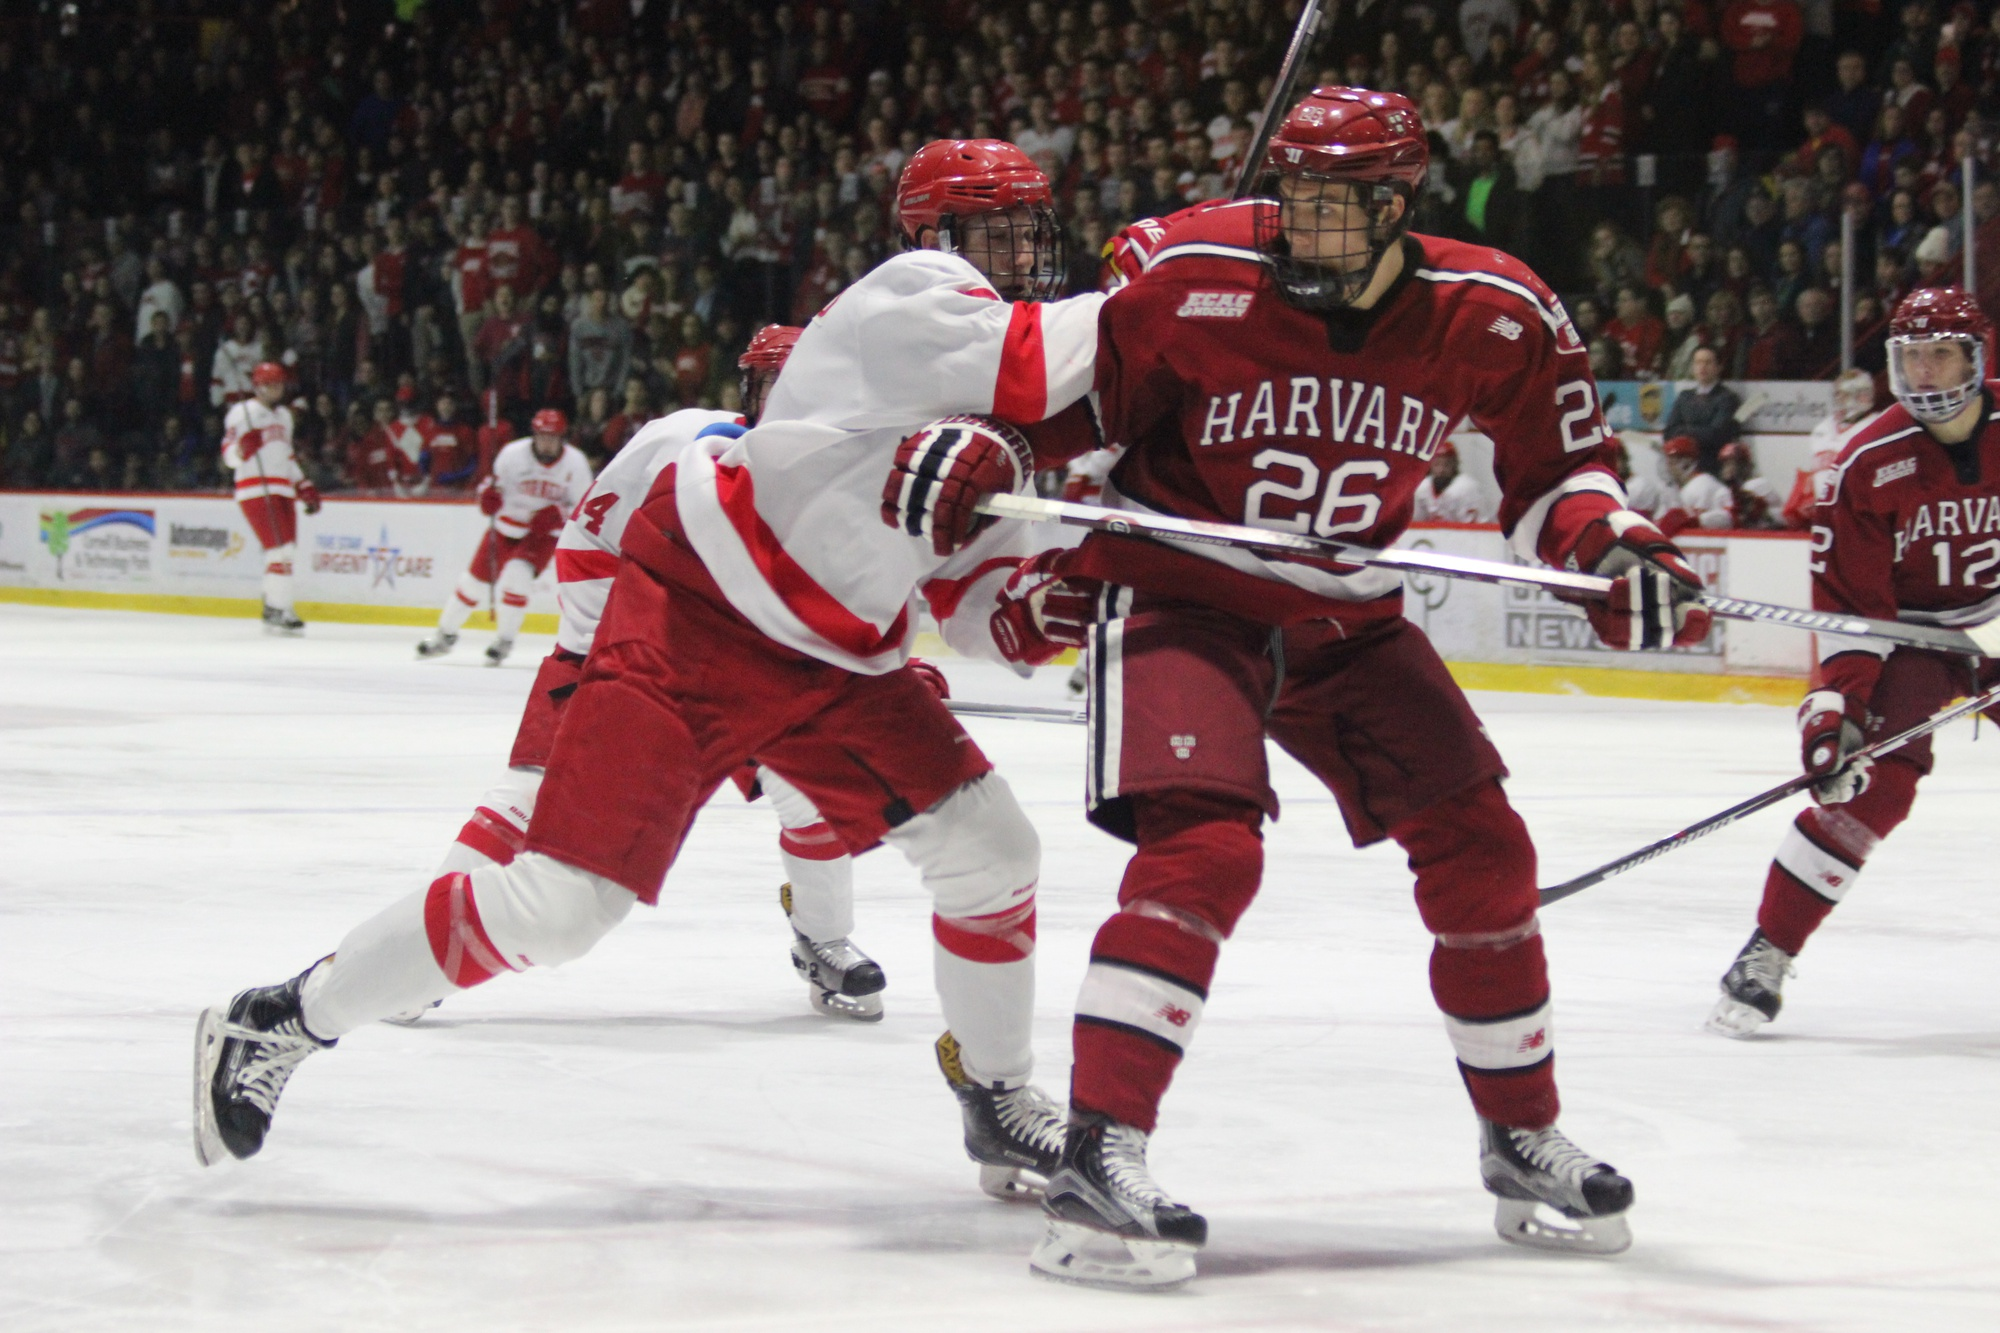 Sophomore defenseman Jacob Olson absorbs a blow from an attacker during a 4-1 win over Cornell on Jan. 27.